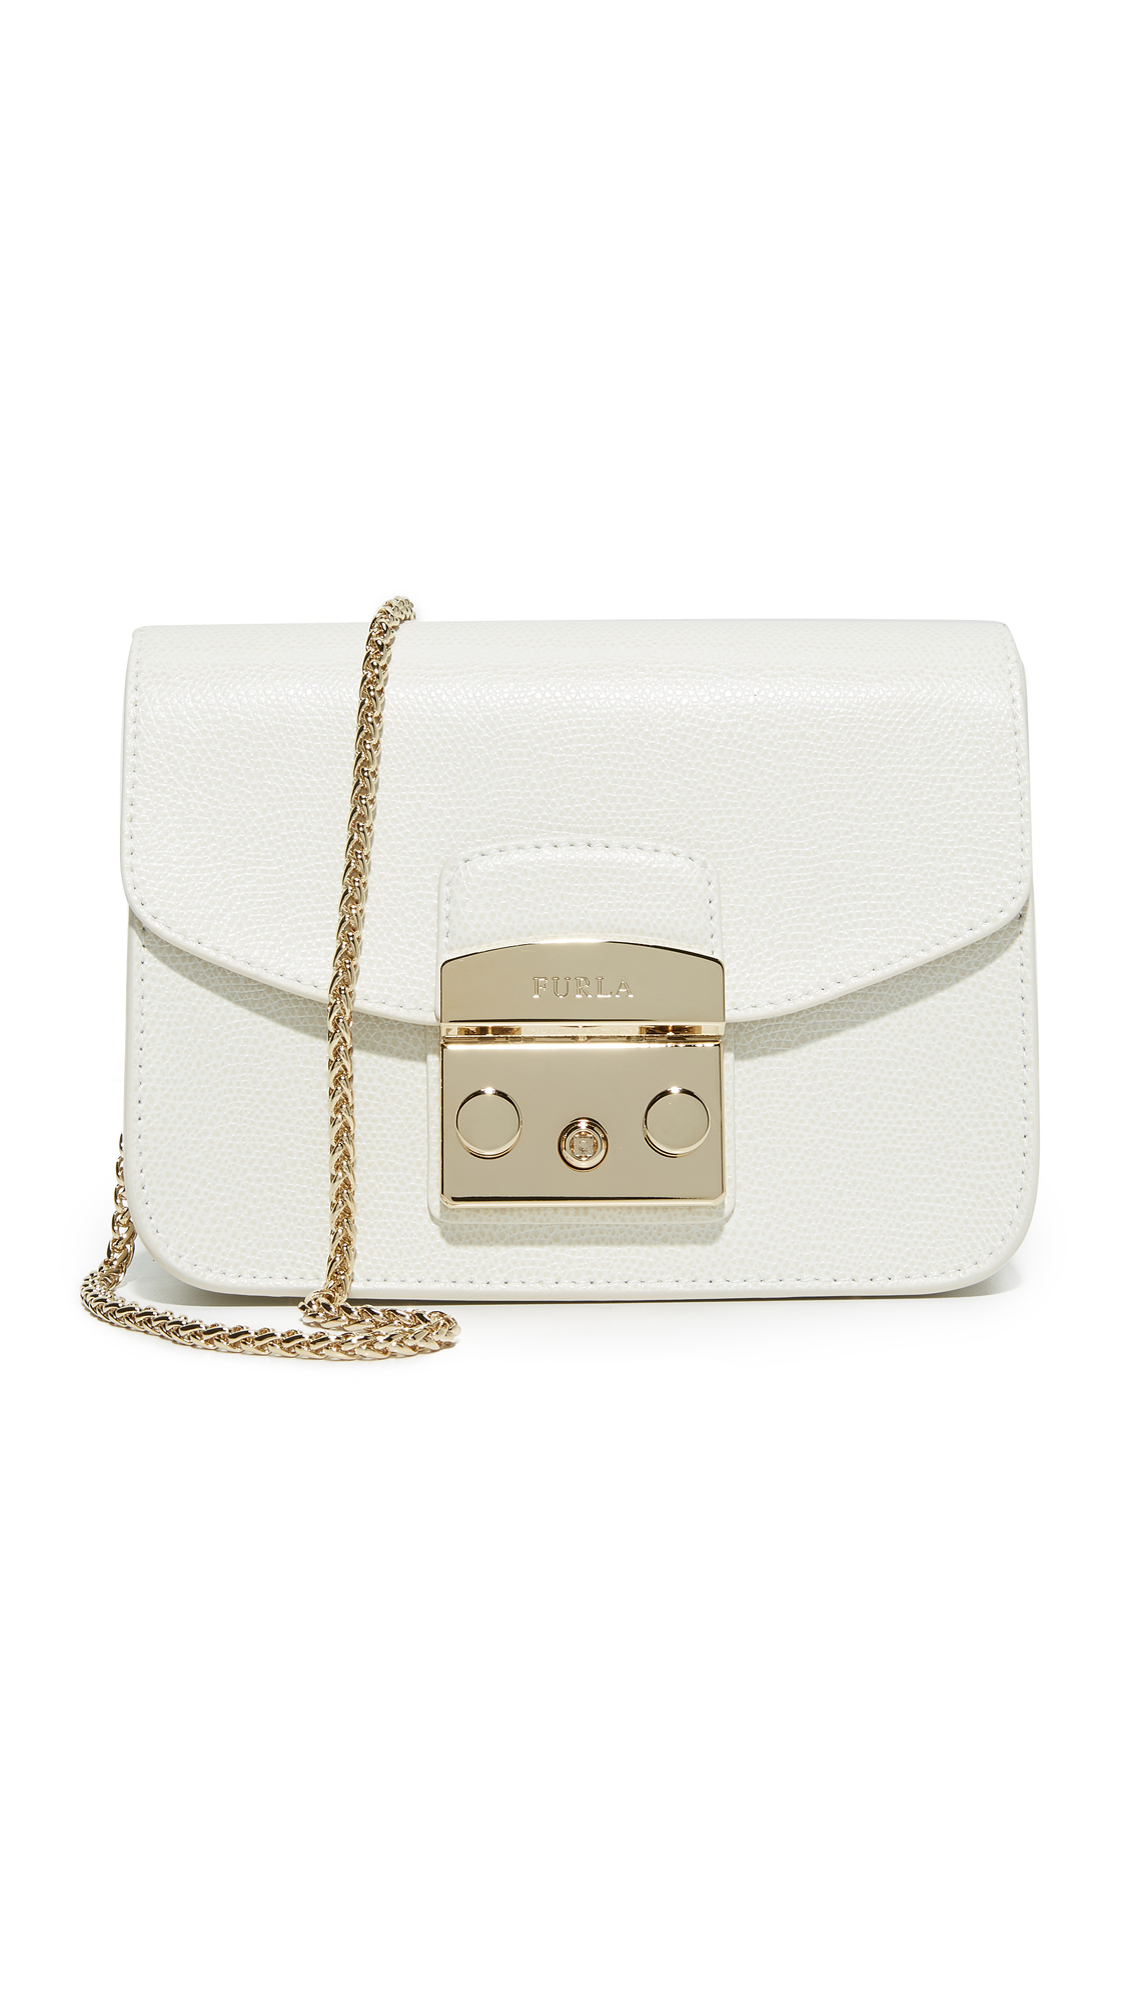 Furla Metropolis Mini Cross Body Bag - Petalo